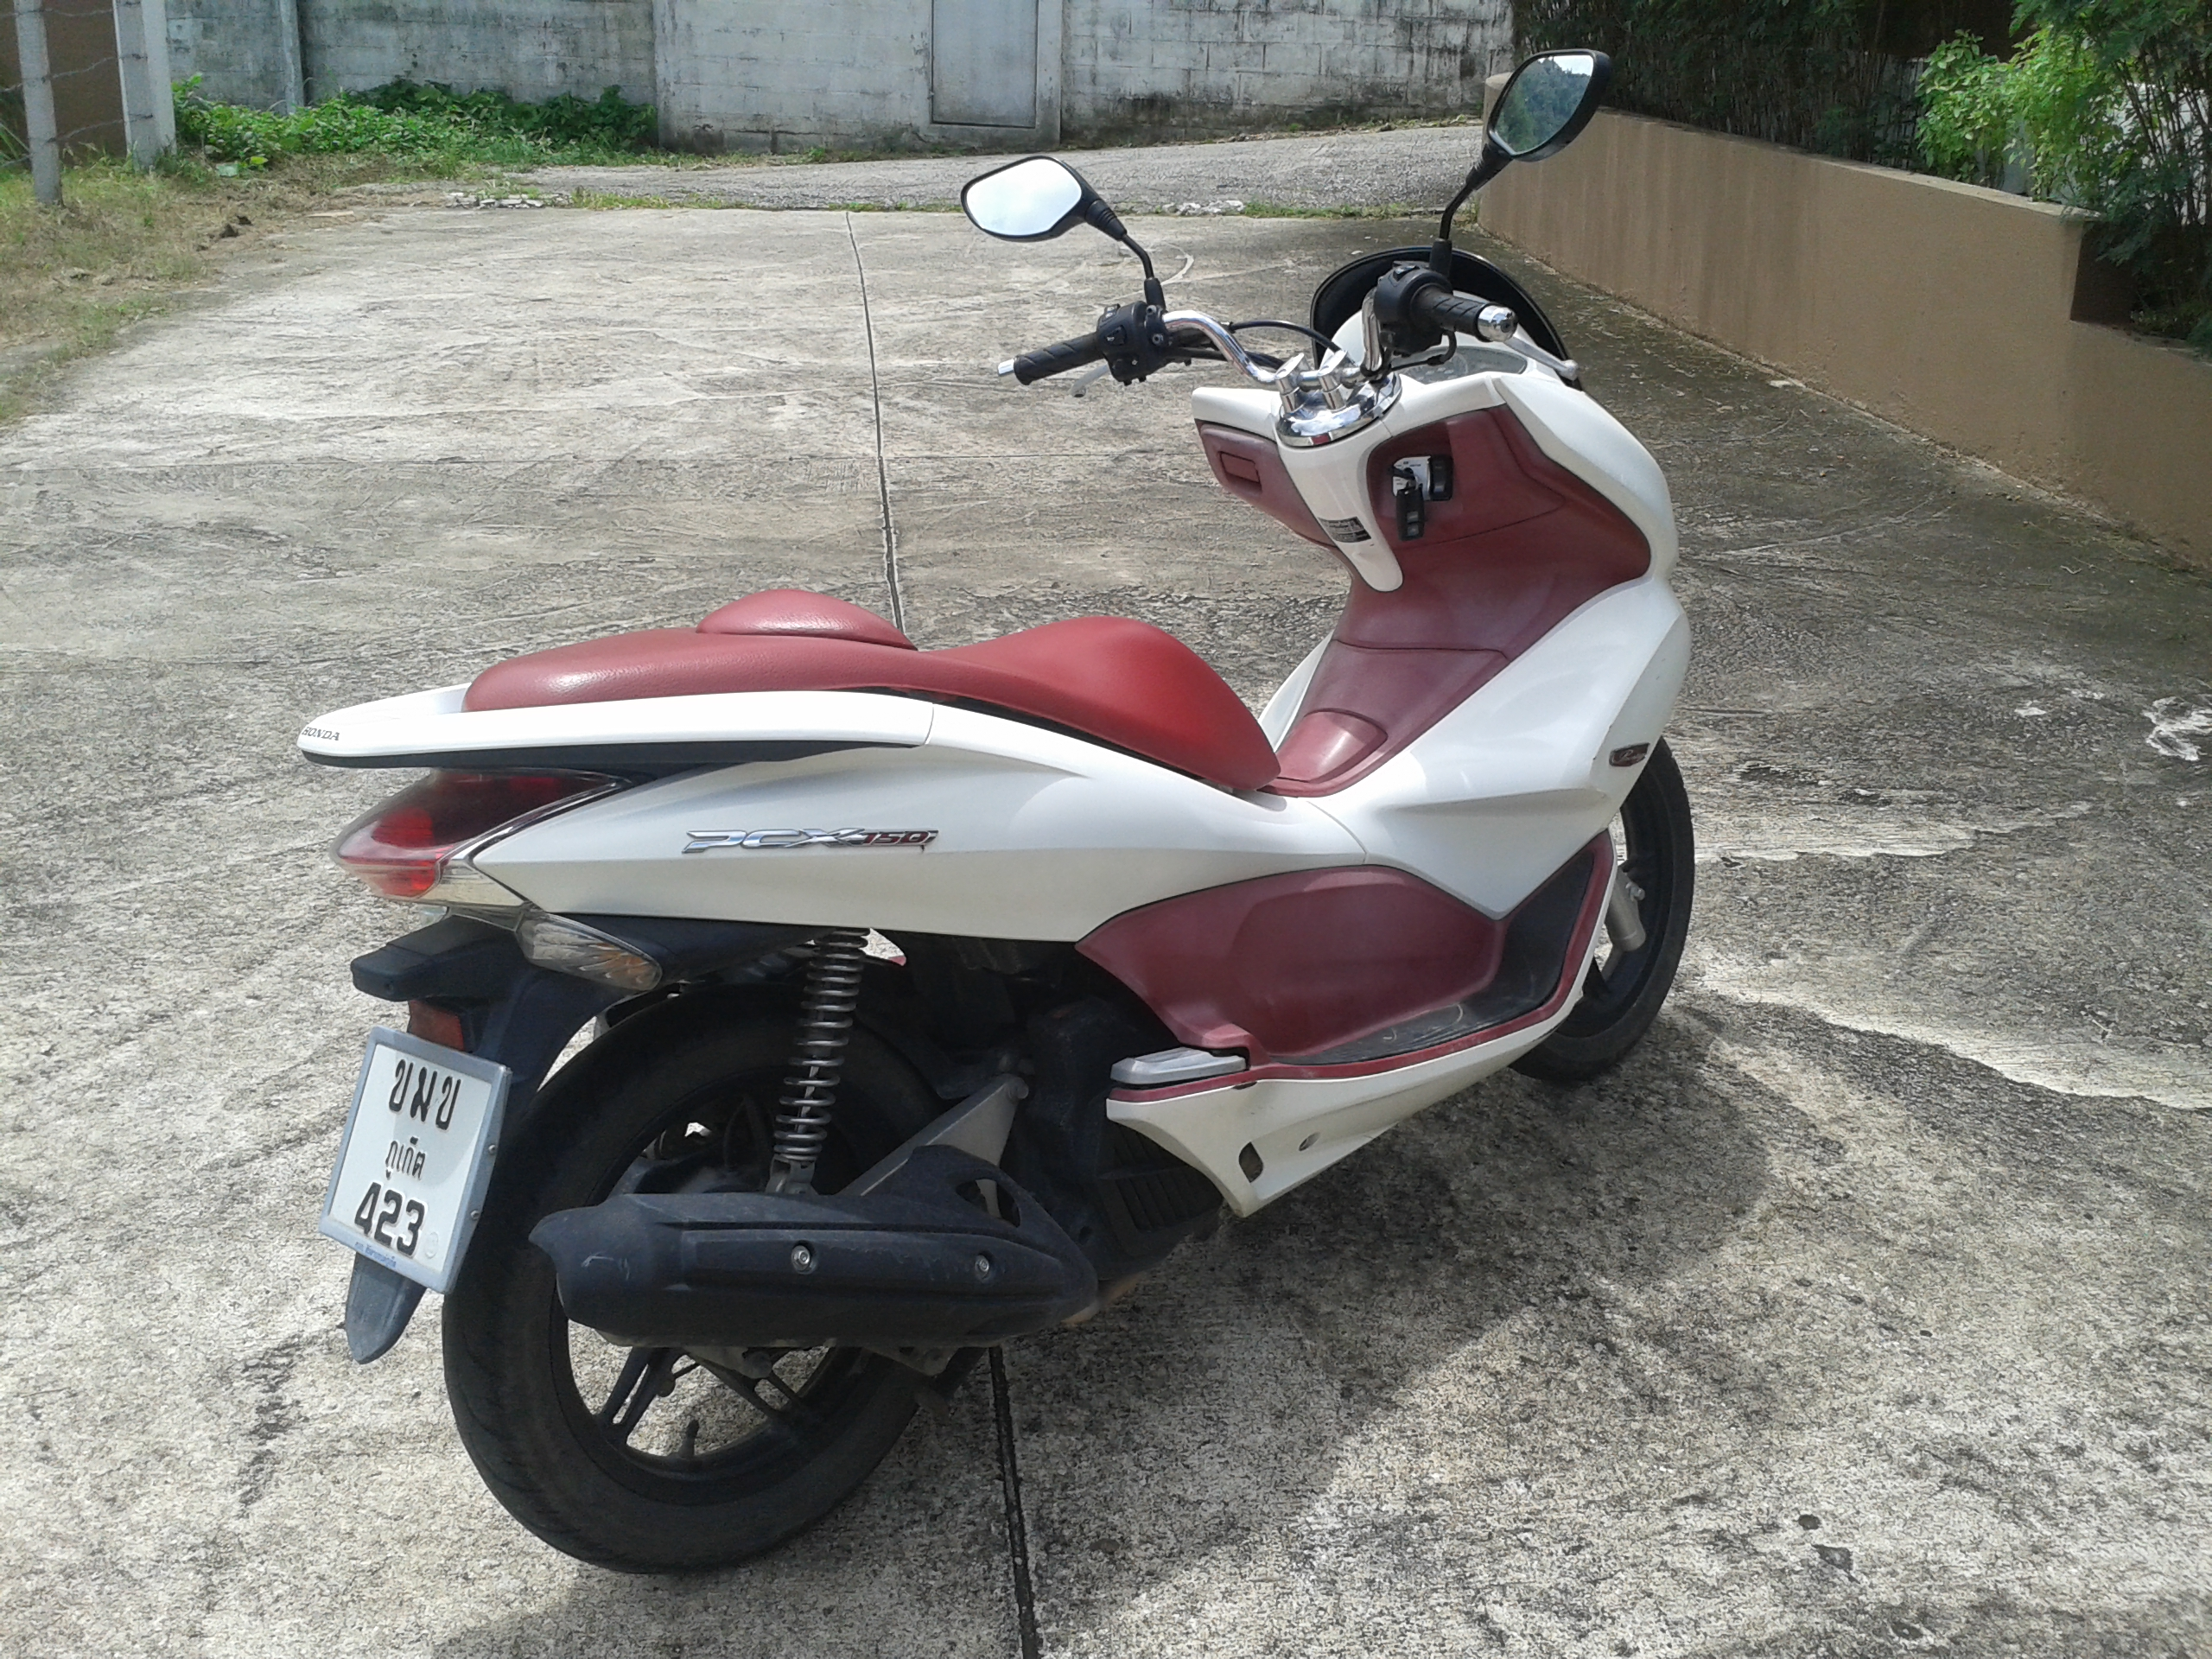 honda pcx 150 done 11 000 km 39 s bikes for sale in thailand thailand visa forum by thai visa. Black Bedroom Furniture Sets. Home Design Ideas